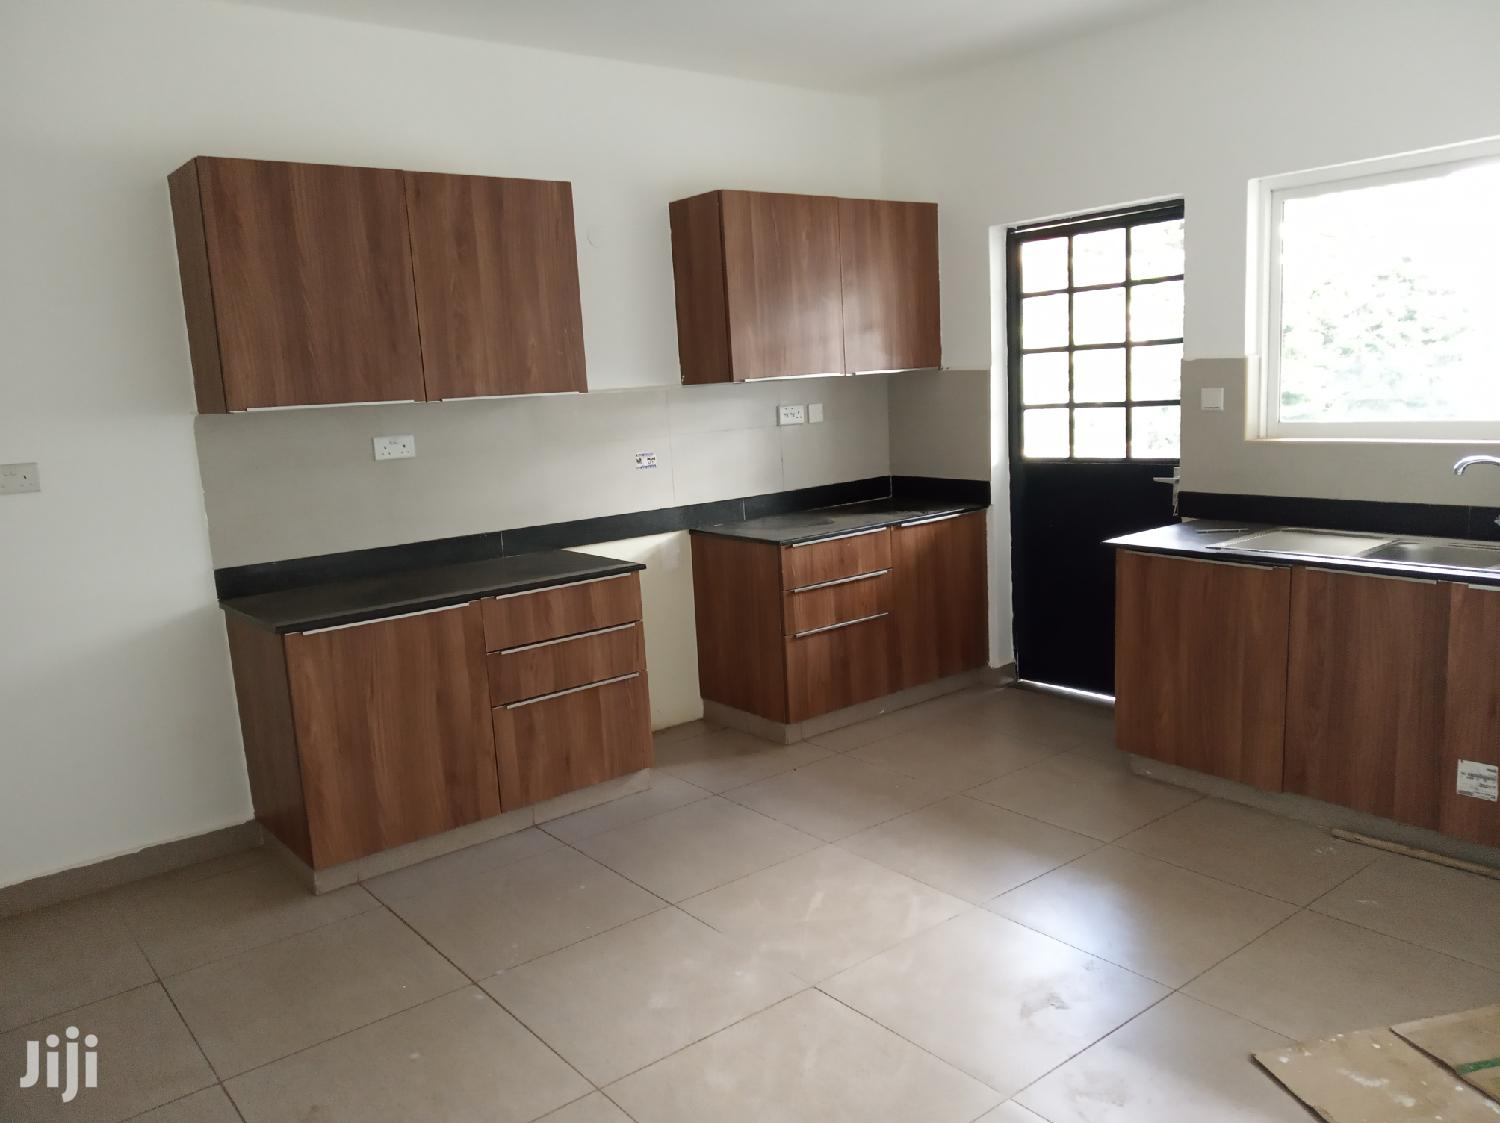 Kilimani Apartments/ Duplexes For Sale/ Rental 3 Bedrooms All Ensuite | Houses & Apartments For Rent for sale in Kilimani, Nairobi, Kenya